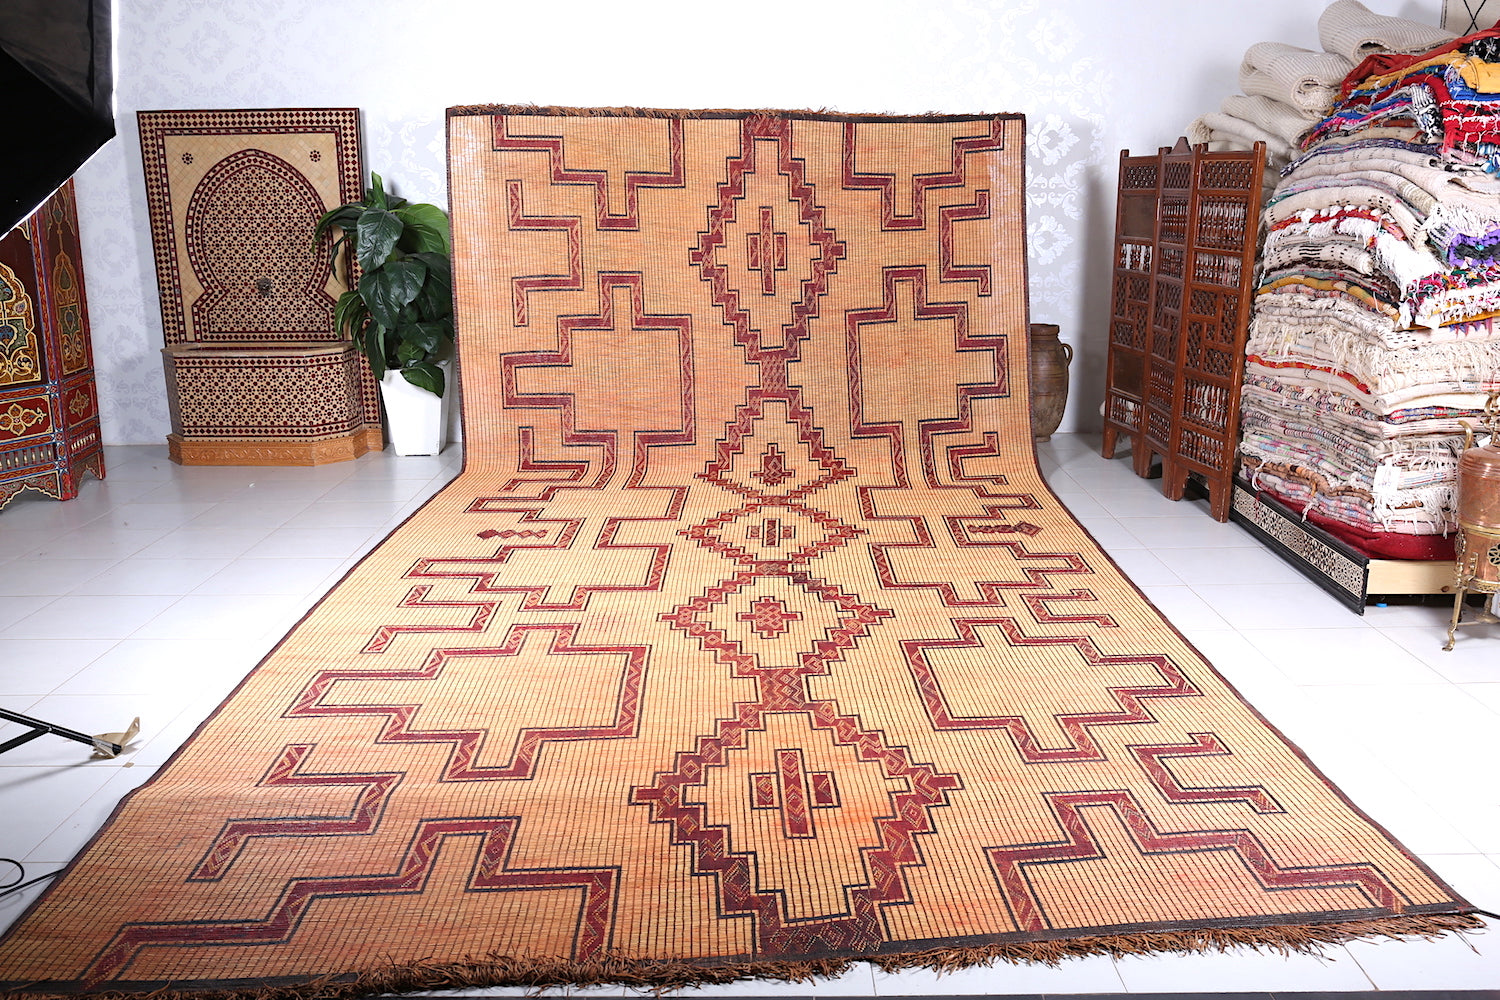 Unique & Antique Classic Nomad Tuareg Mat (99.4ft x 18.8ft)